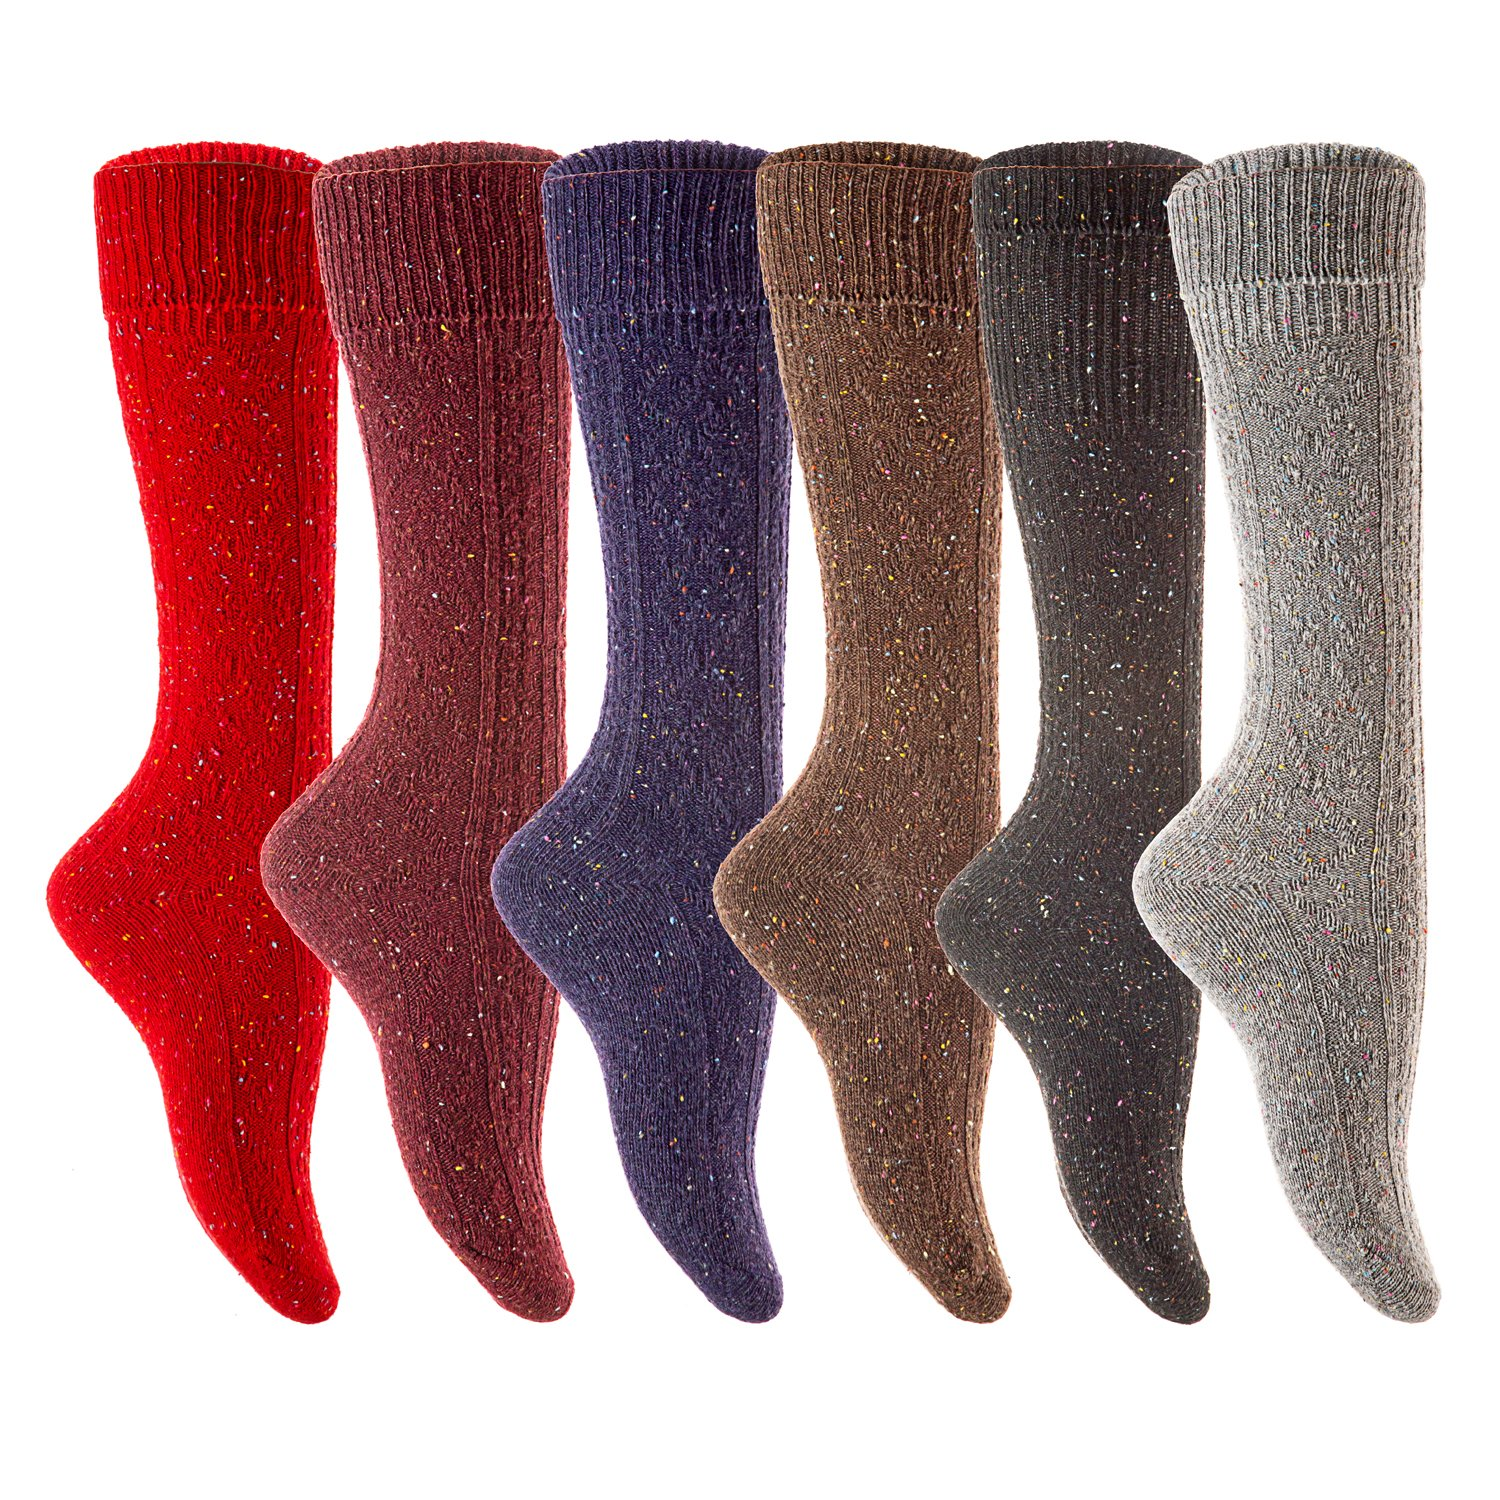 Lian LifeStyle Womens 1 Pair High Crew Wool Socks Size 7-9 (Black) at Amazon Womens Clothing store: